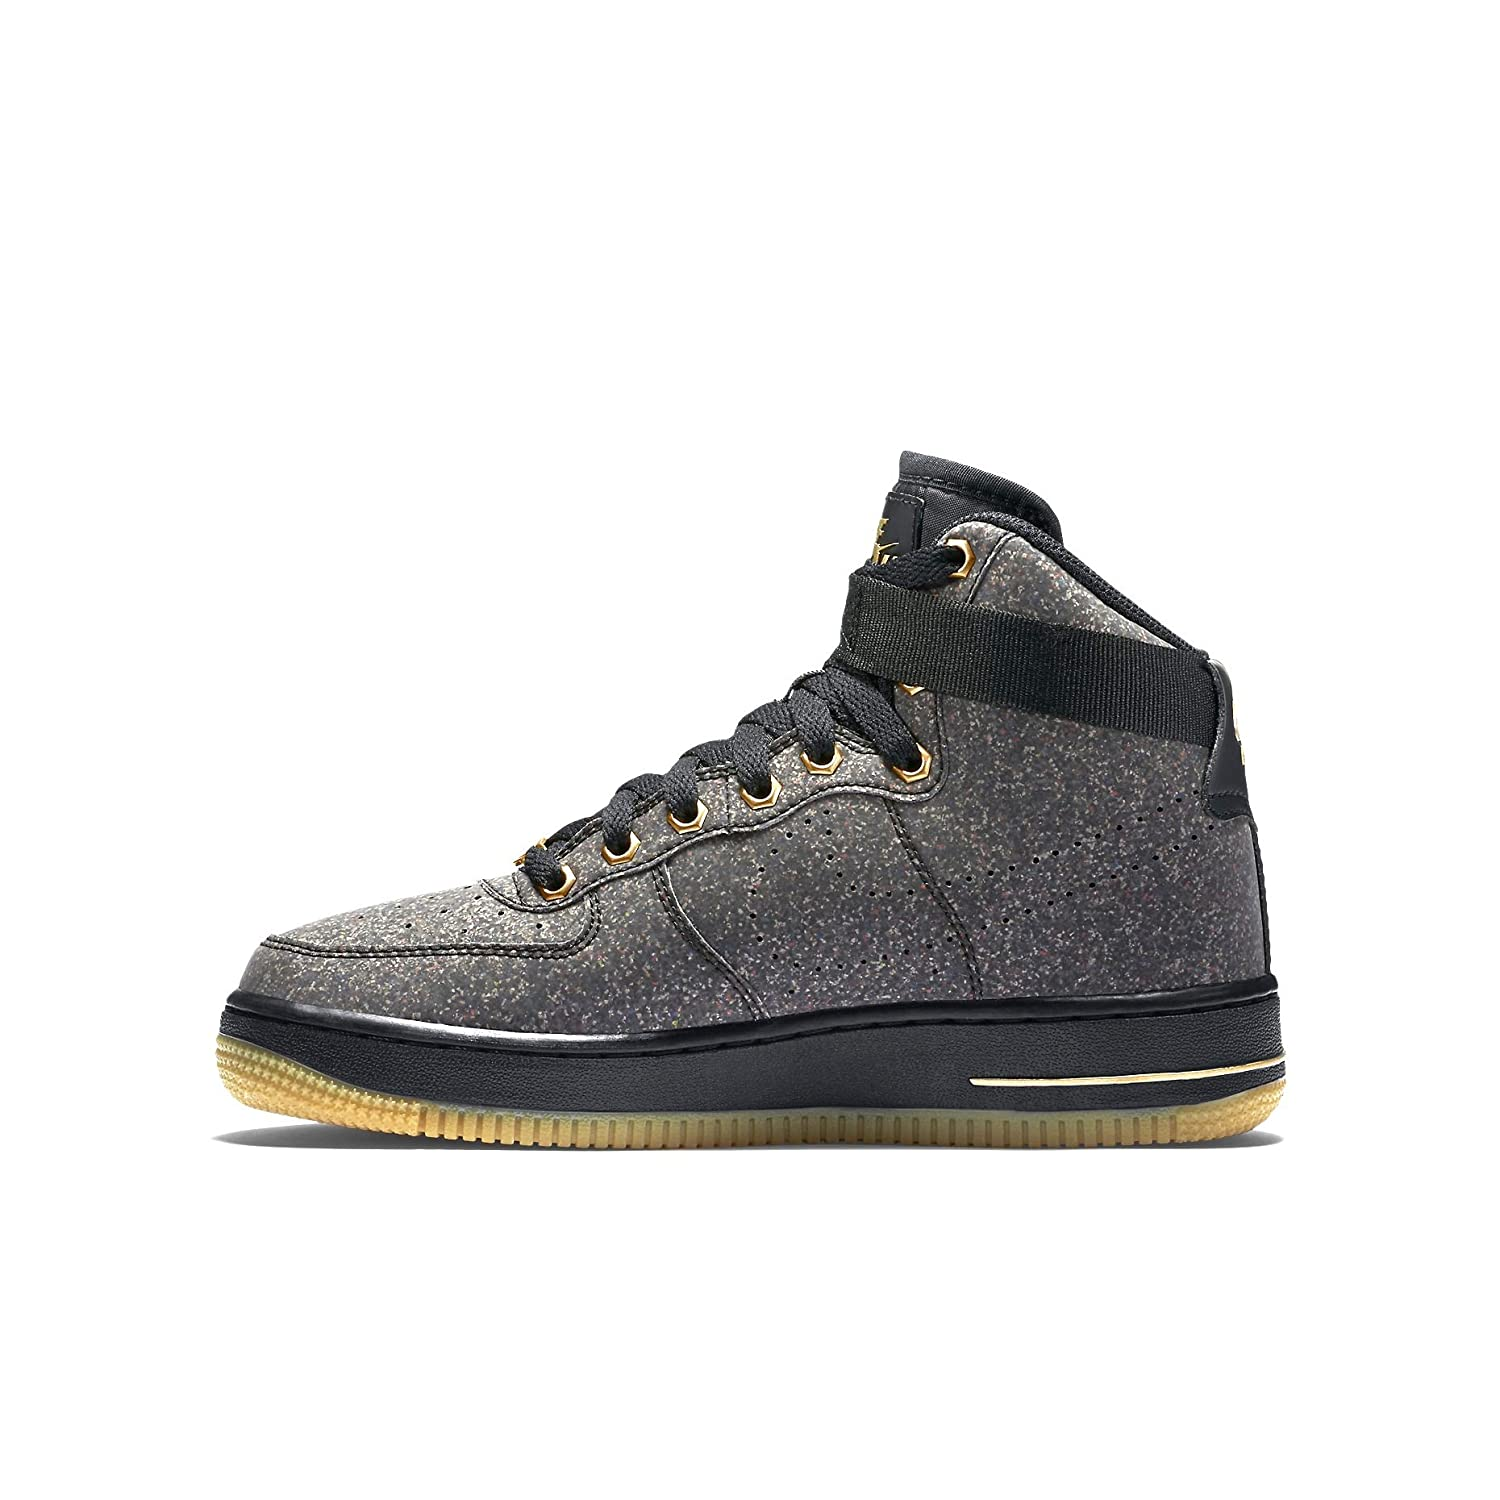 the latest c48ae aaae6 Nike Air Force 1 High LV8 (GS) Black Gum Metalic Gold 807617-007 (Size  7Y)   Amazon.ca  Shoes   Handbags